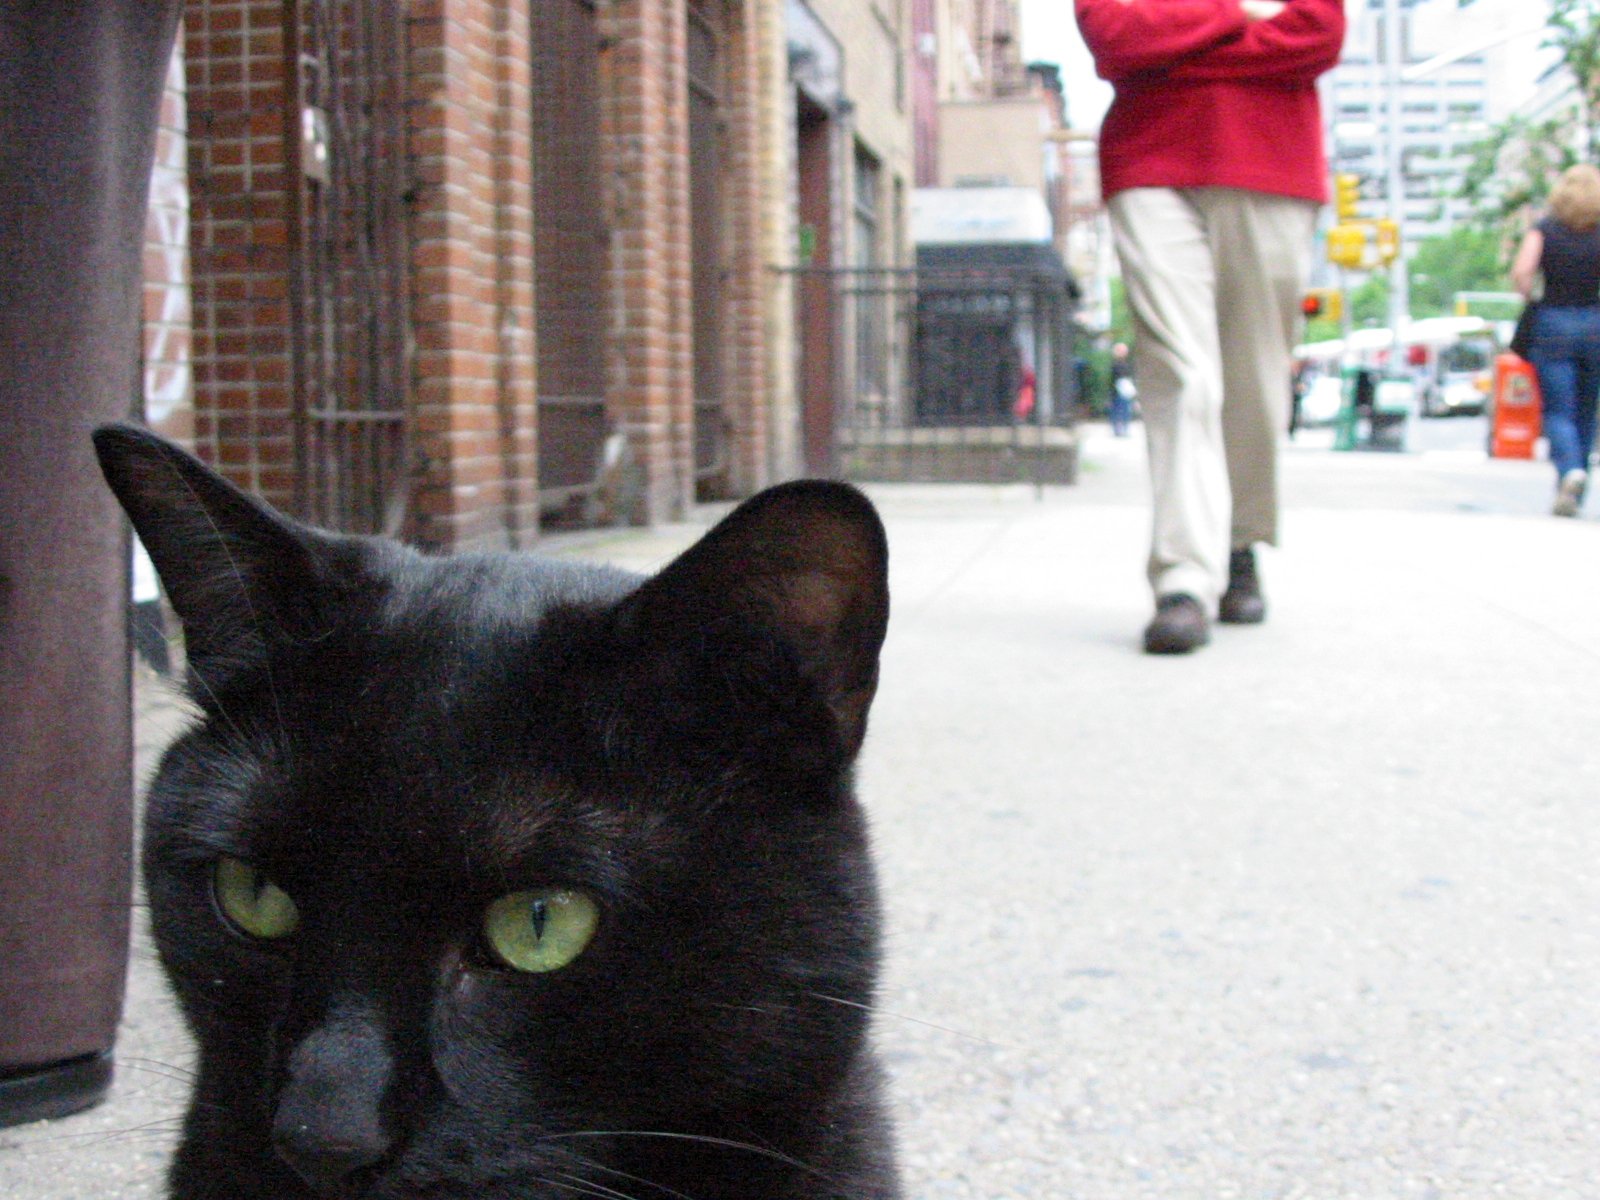 2nd Avenue Cat, 2nd Ave, New York, NY